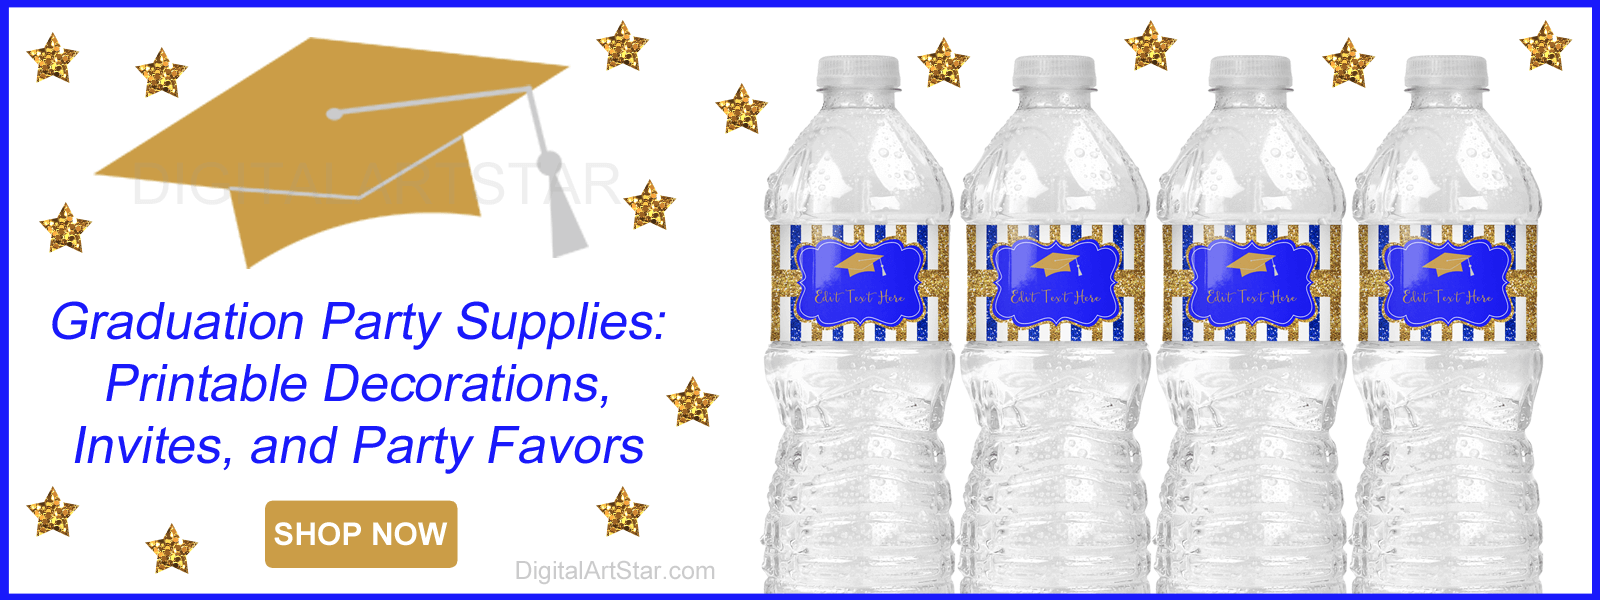 2021 Graduation Party Supplies Printable Decorations Invites Graduation Party Favors